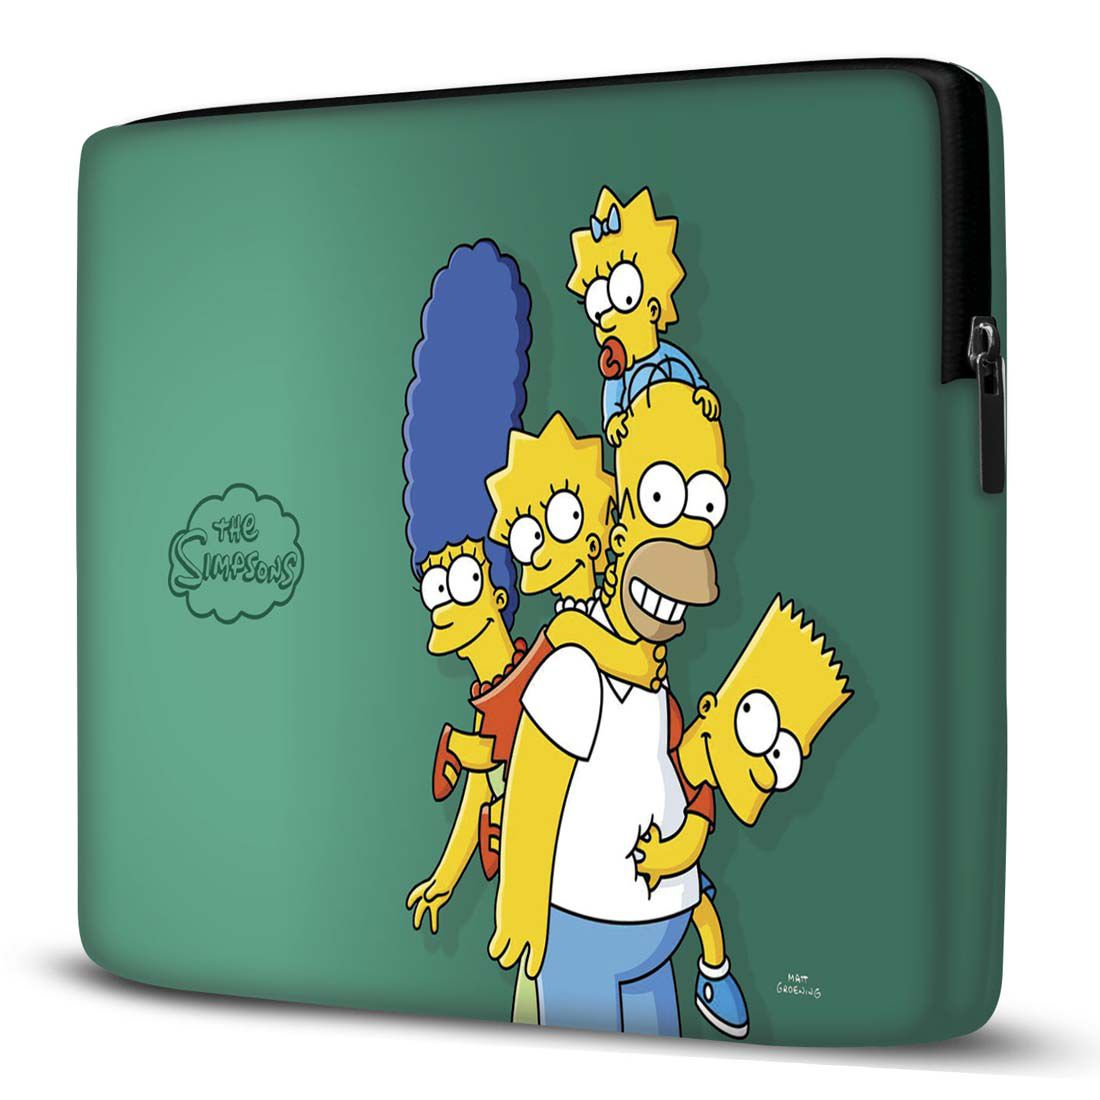 Capa para Notebook Simpsons Verde 15 Polegadas